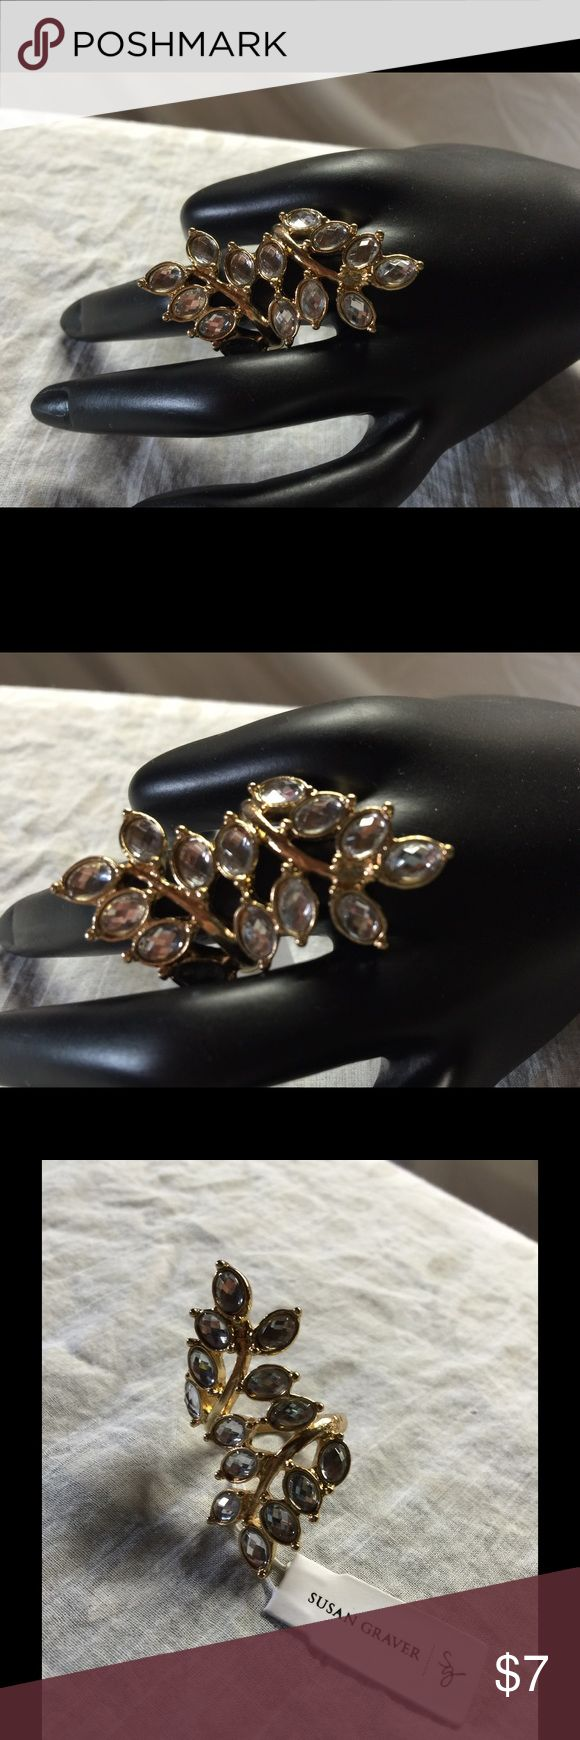 "Susan Graver Elongated Crystal Leaf Ring Gold tone Elongated design; bypass styling in the shape of a leaf; oval-shaped, clear simulated crystals; highly polished shank Sizes  8 Measures approximately 1-3/4""L x 3/4""W Susan Graver Jewelry Rings"